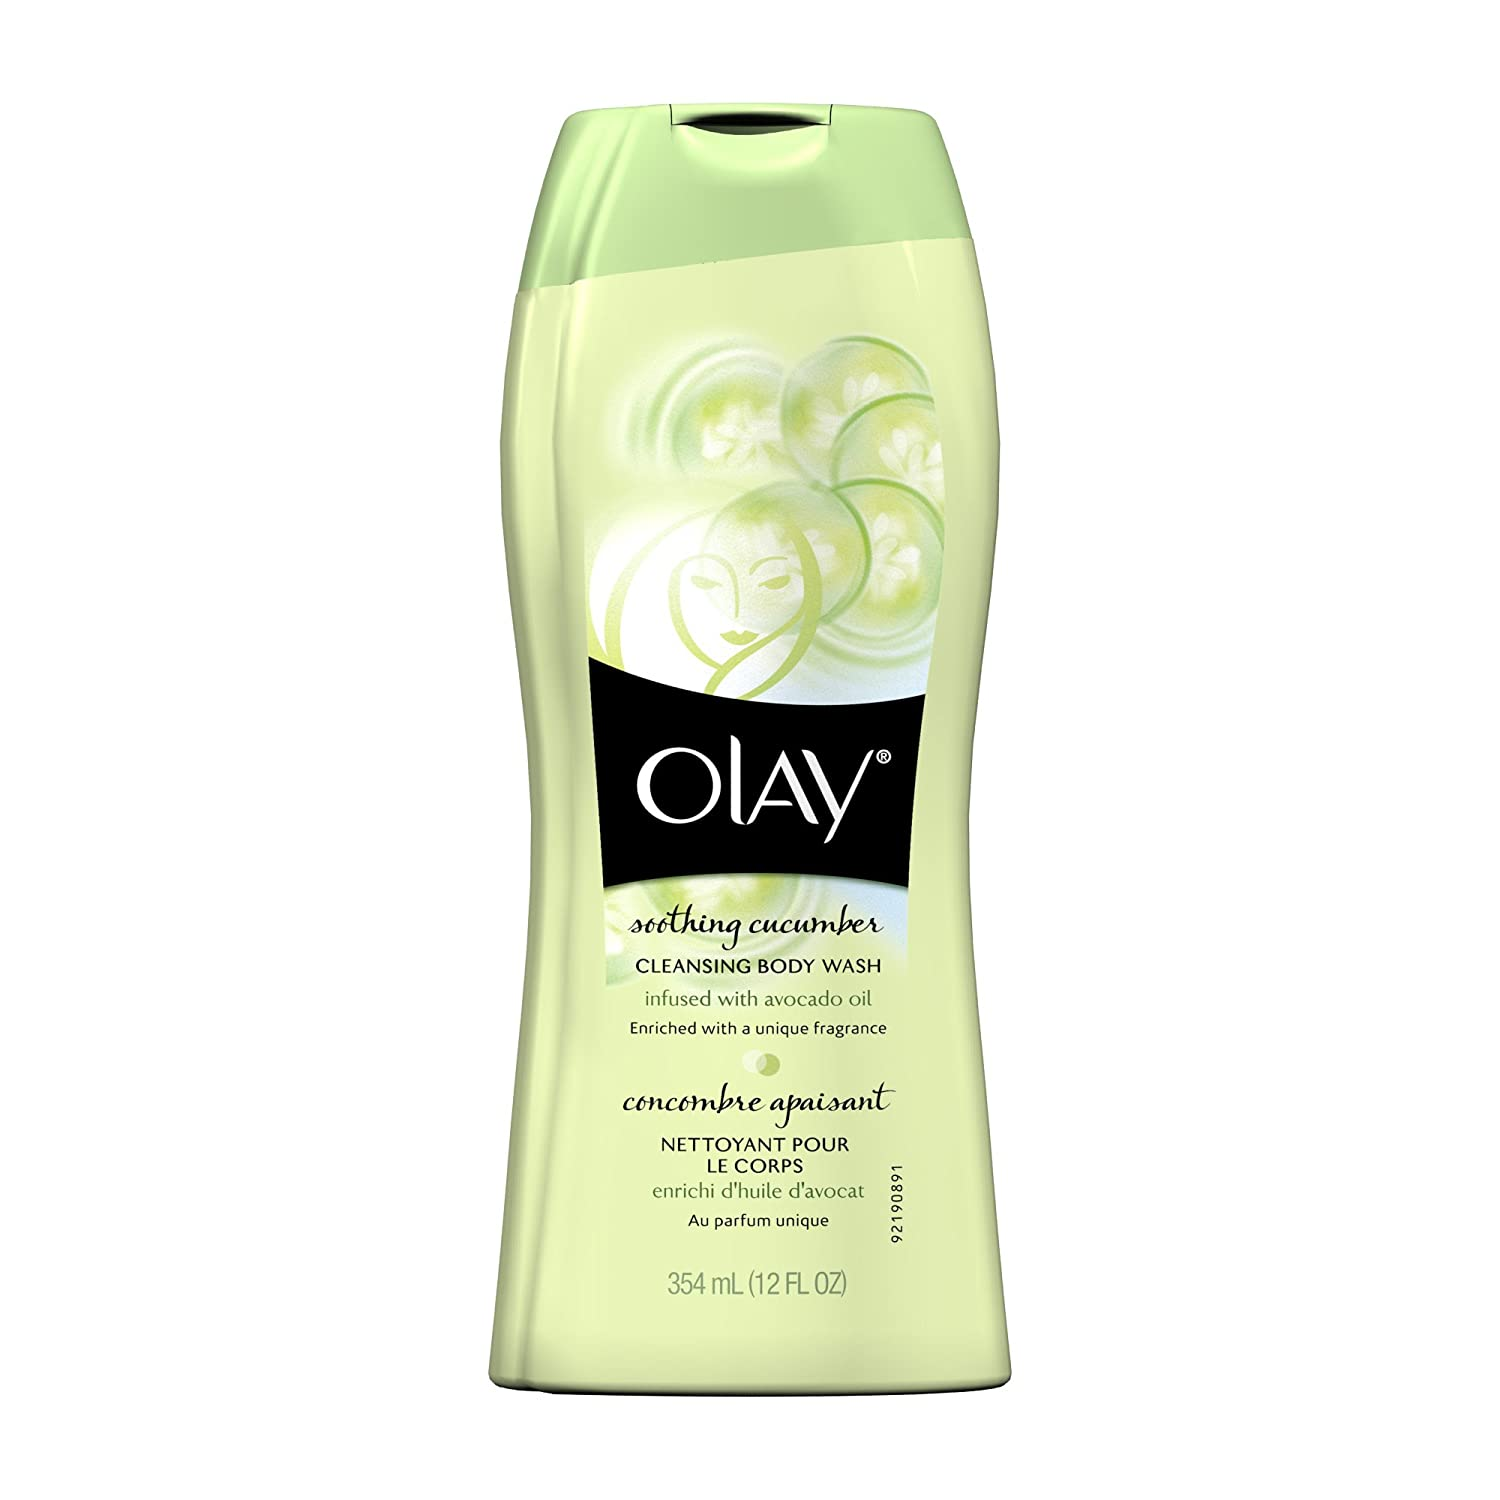 Olay Soothing Cucumber Cleansing Body Wash, 12 Fluid Ounce (Pack of 2) $5.82 with $1 coupon